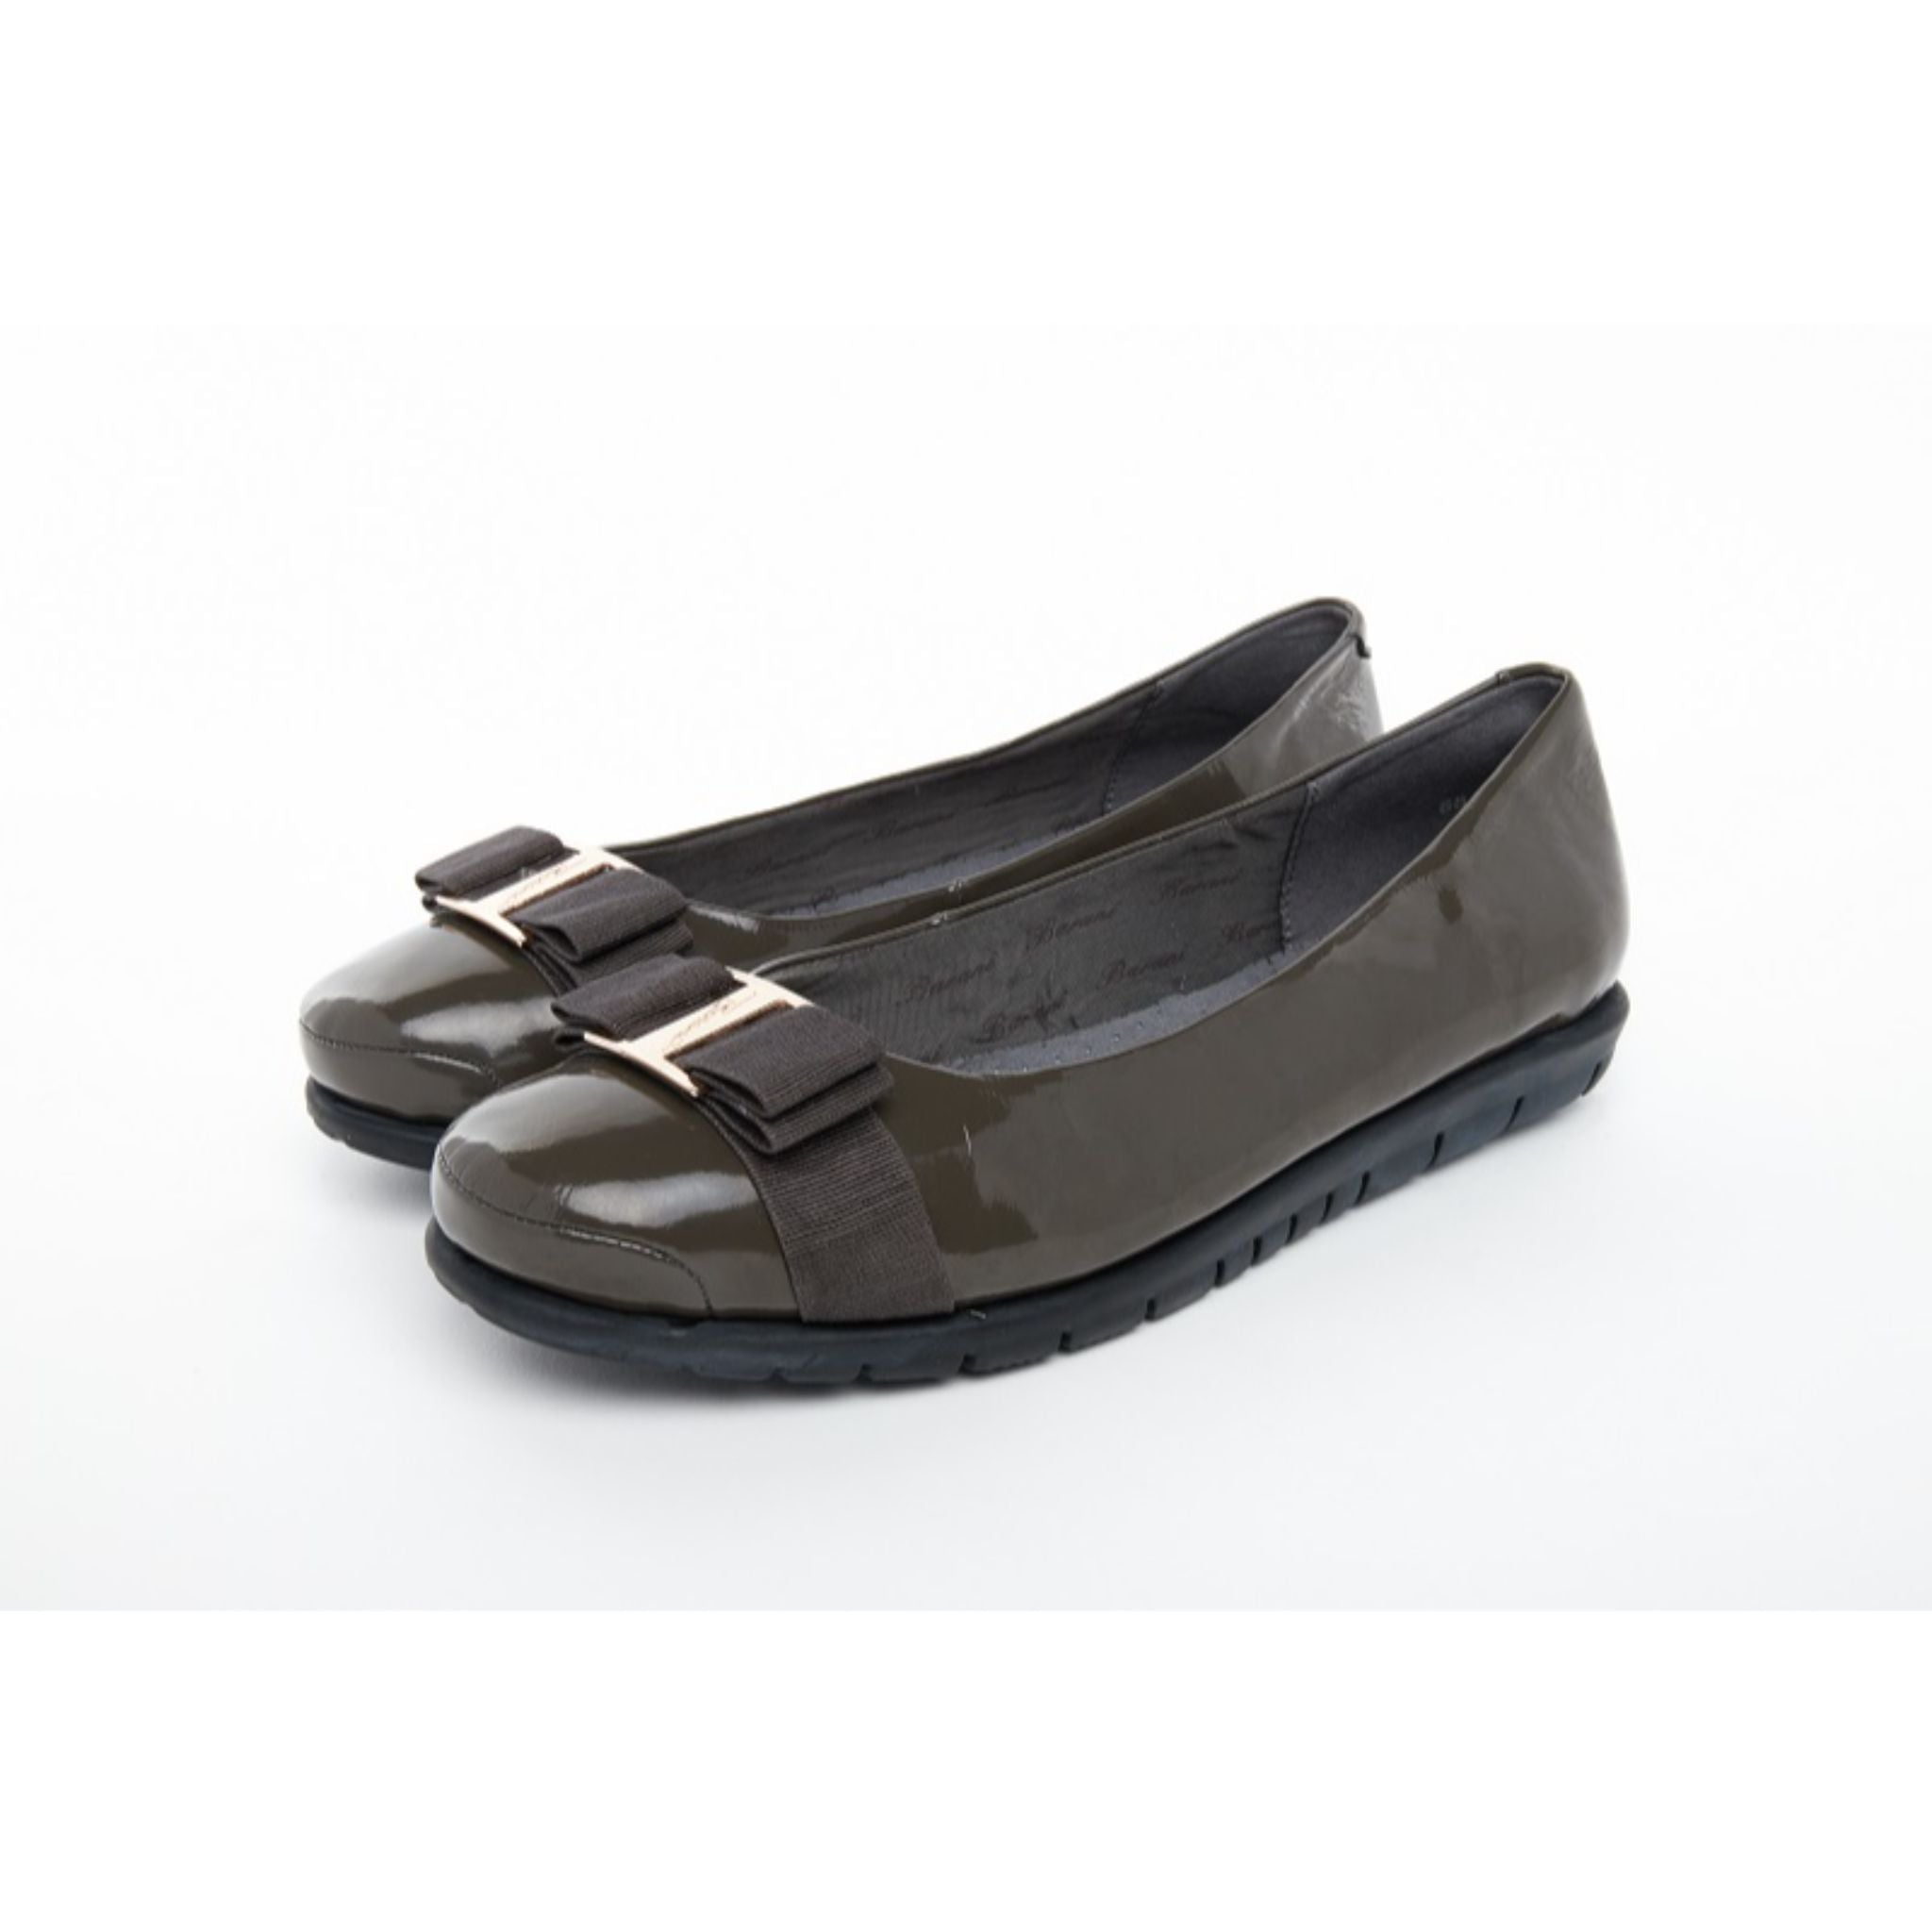 Barani Leather Pumps/Ballet Flats With Fixed Buckle 8841-199 Grey Patent